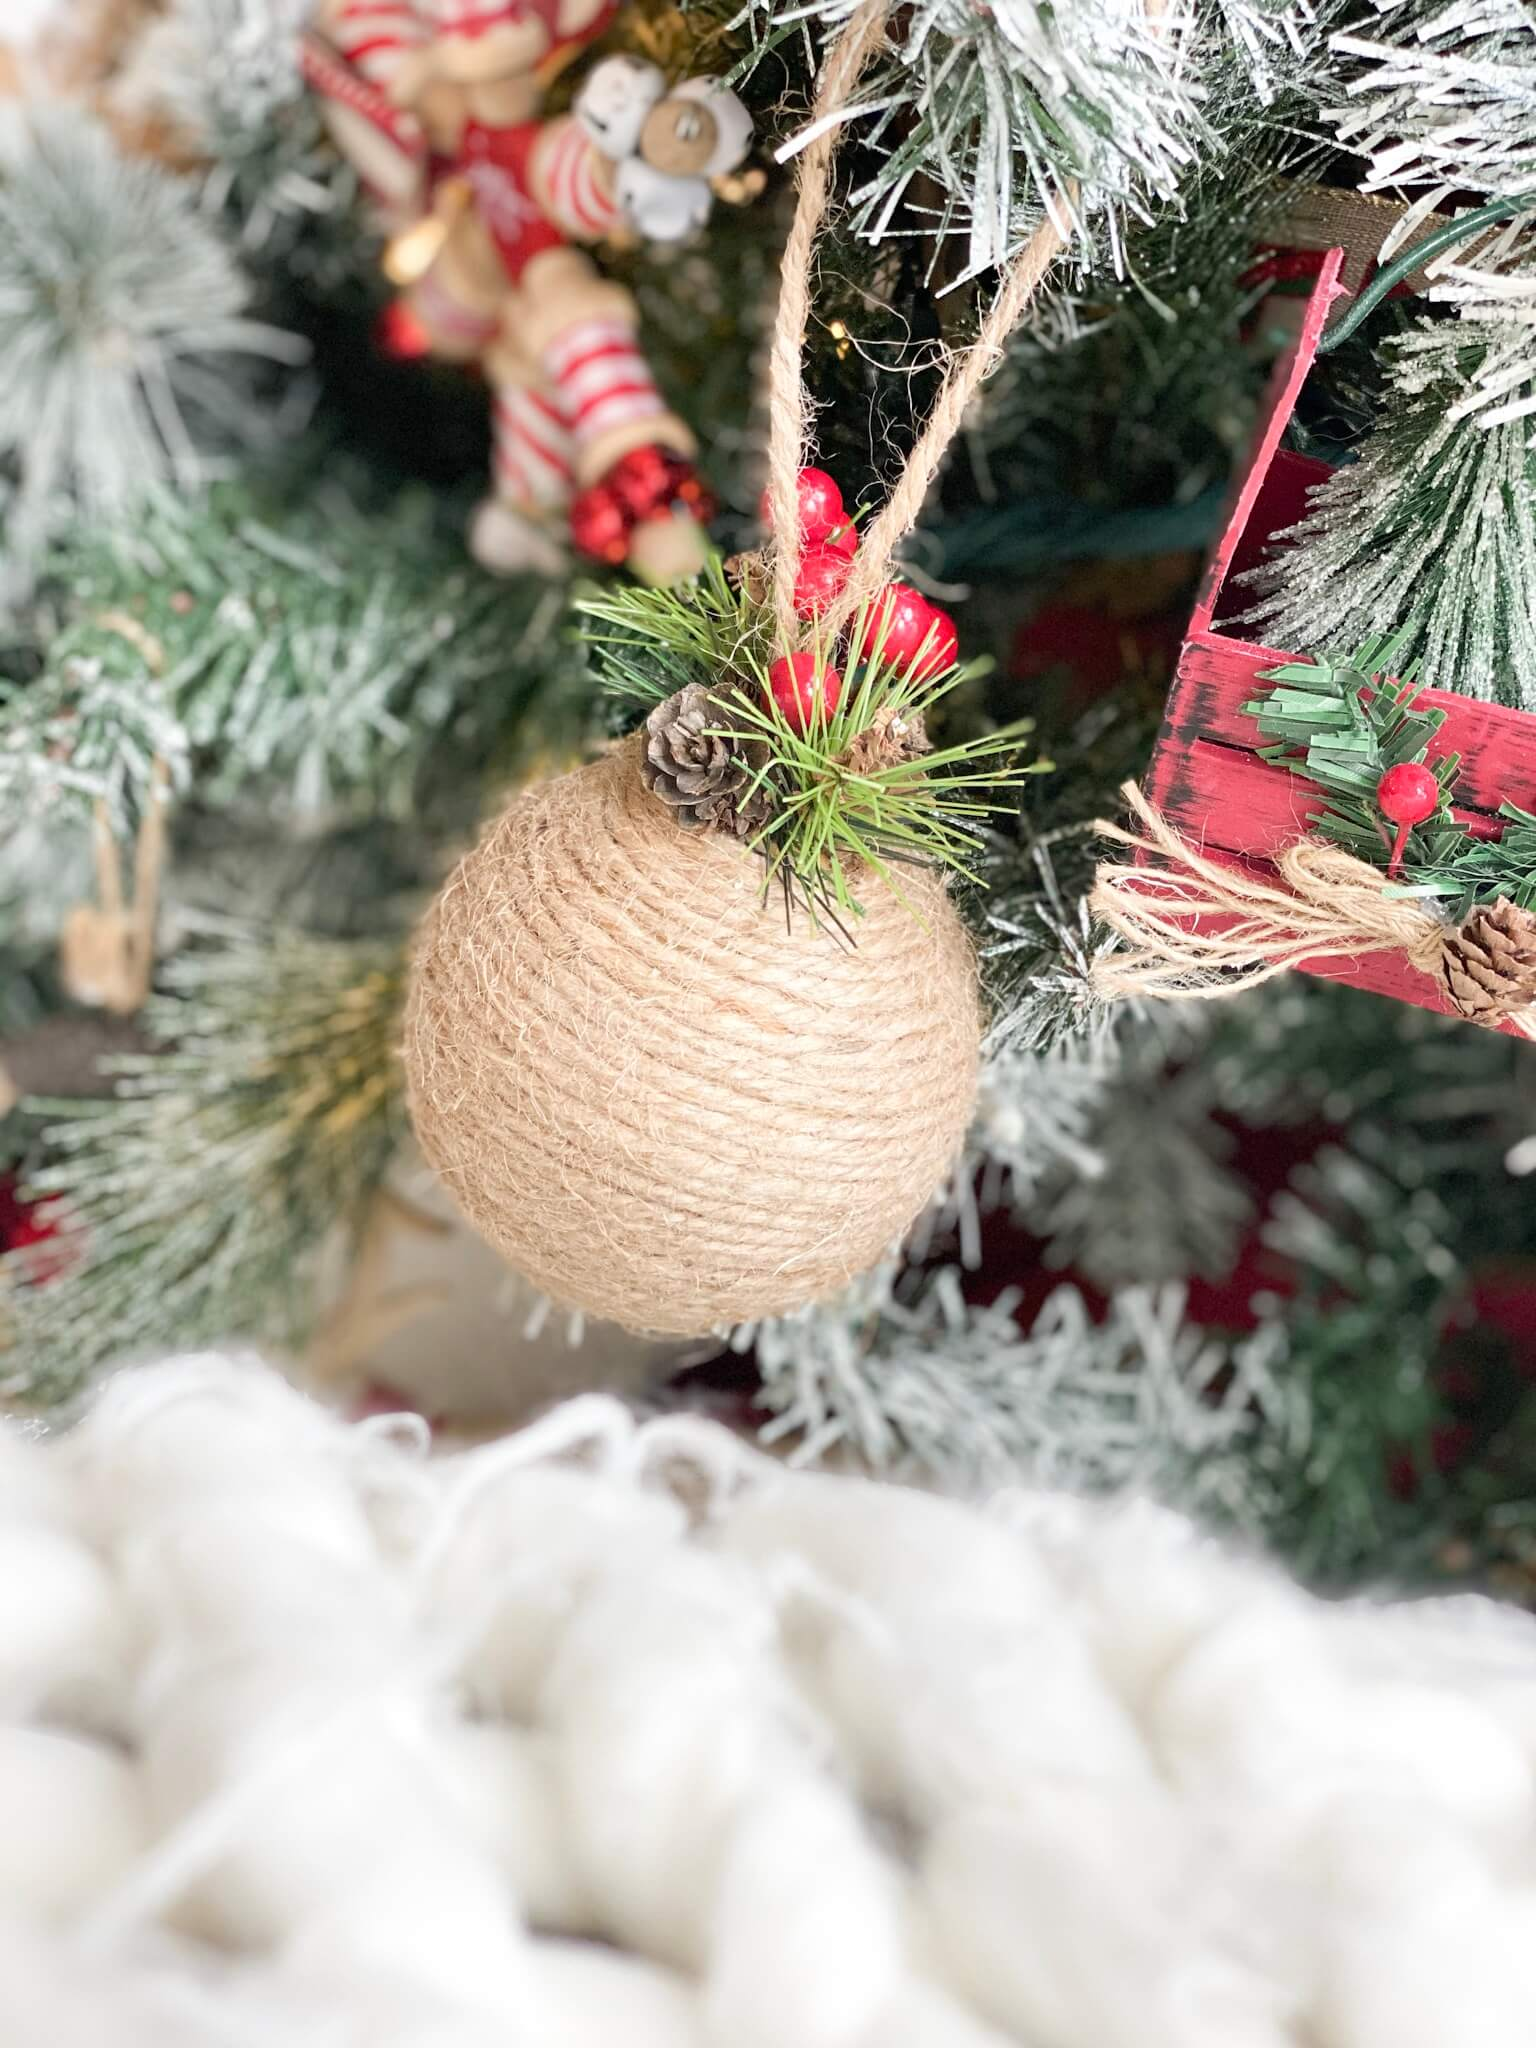 Ornament wrapped in twine